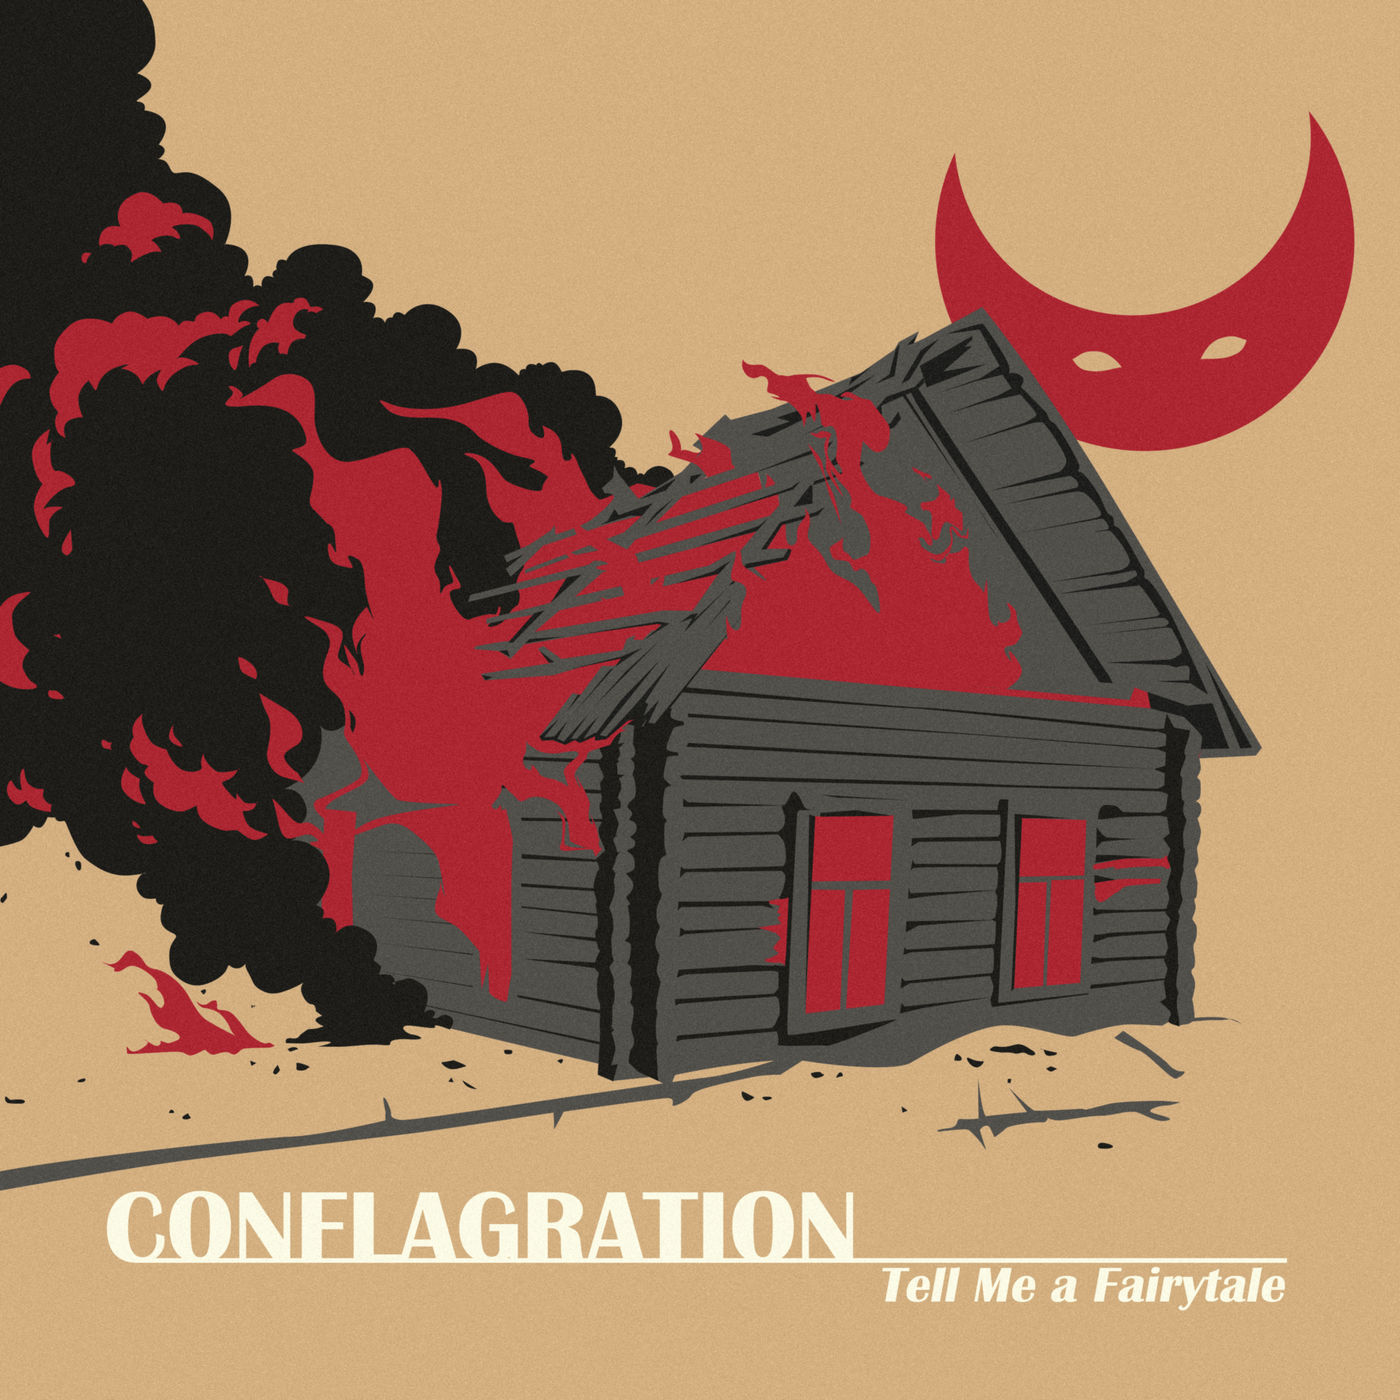 Tell Me a Fairytale - Conflagration [single] (2020)